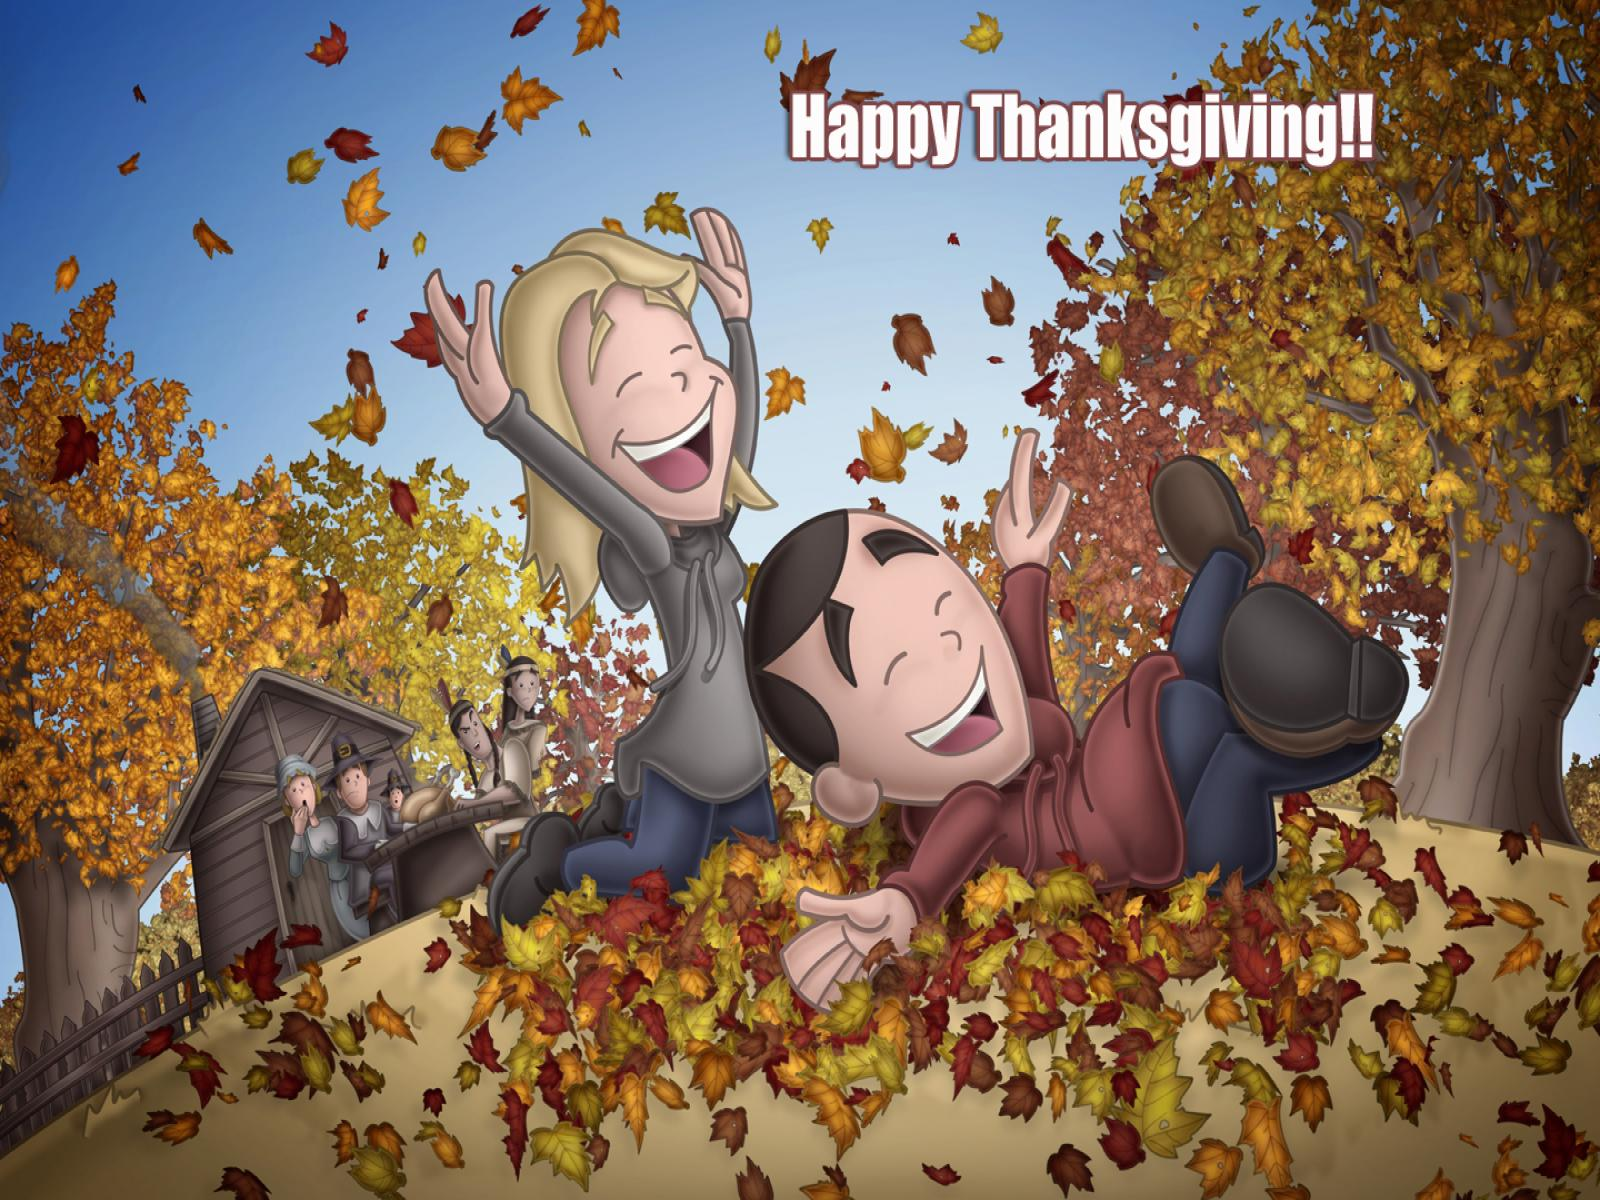 Animated Fall Wallpaper Free Disney Thanksgiving Hd Backgrounds Pixelstalk Net